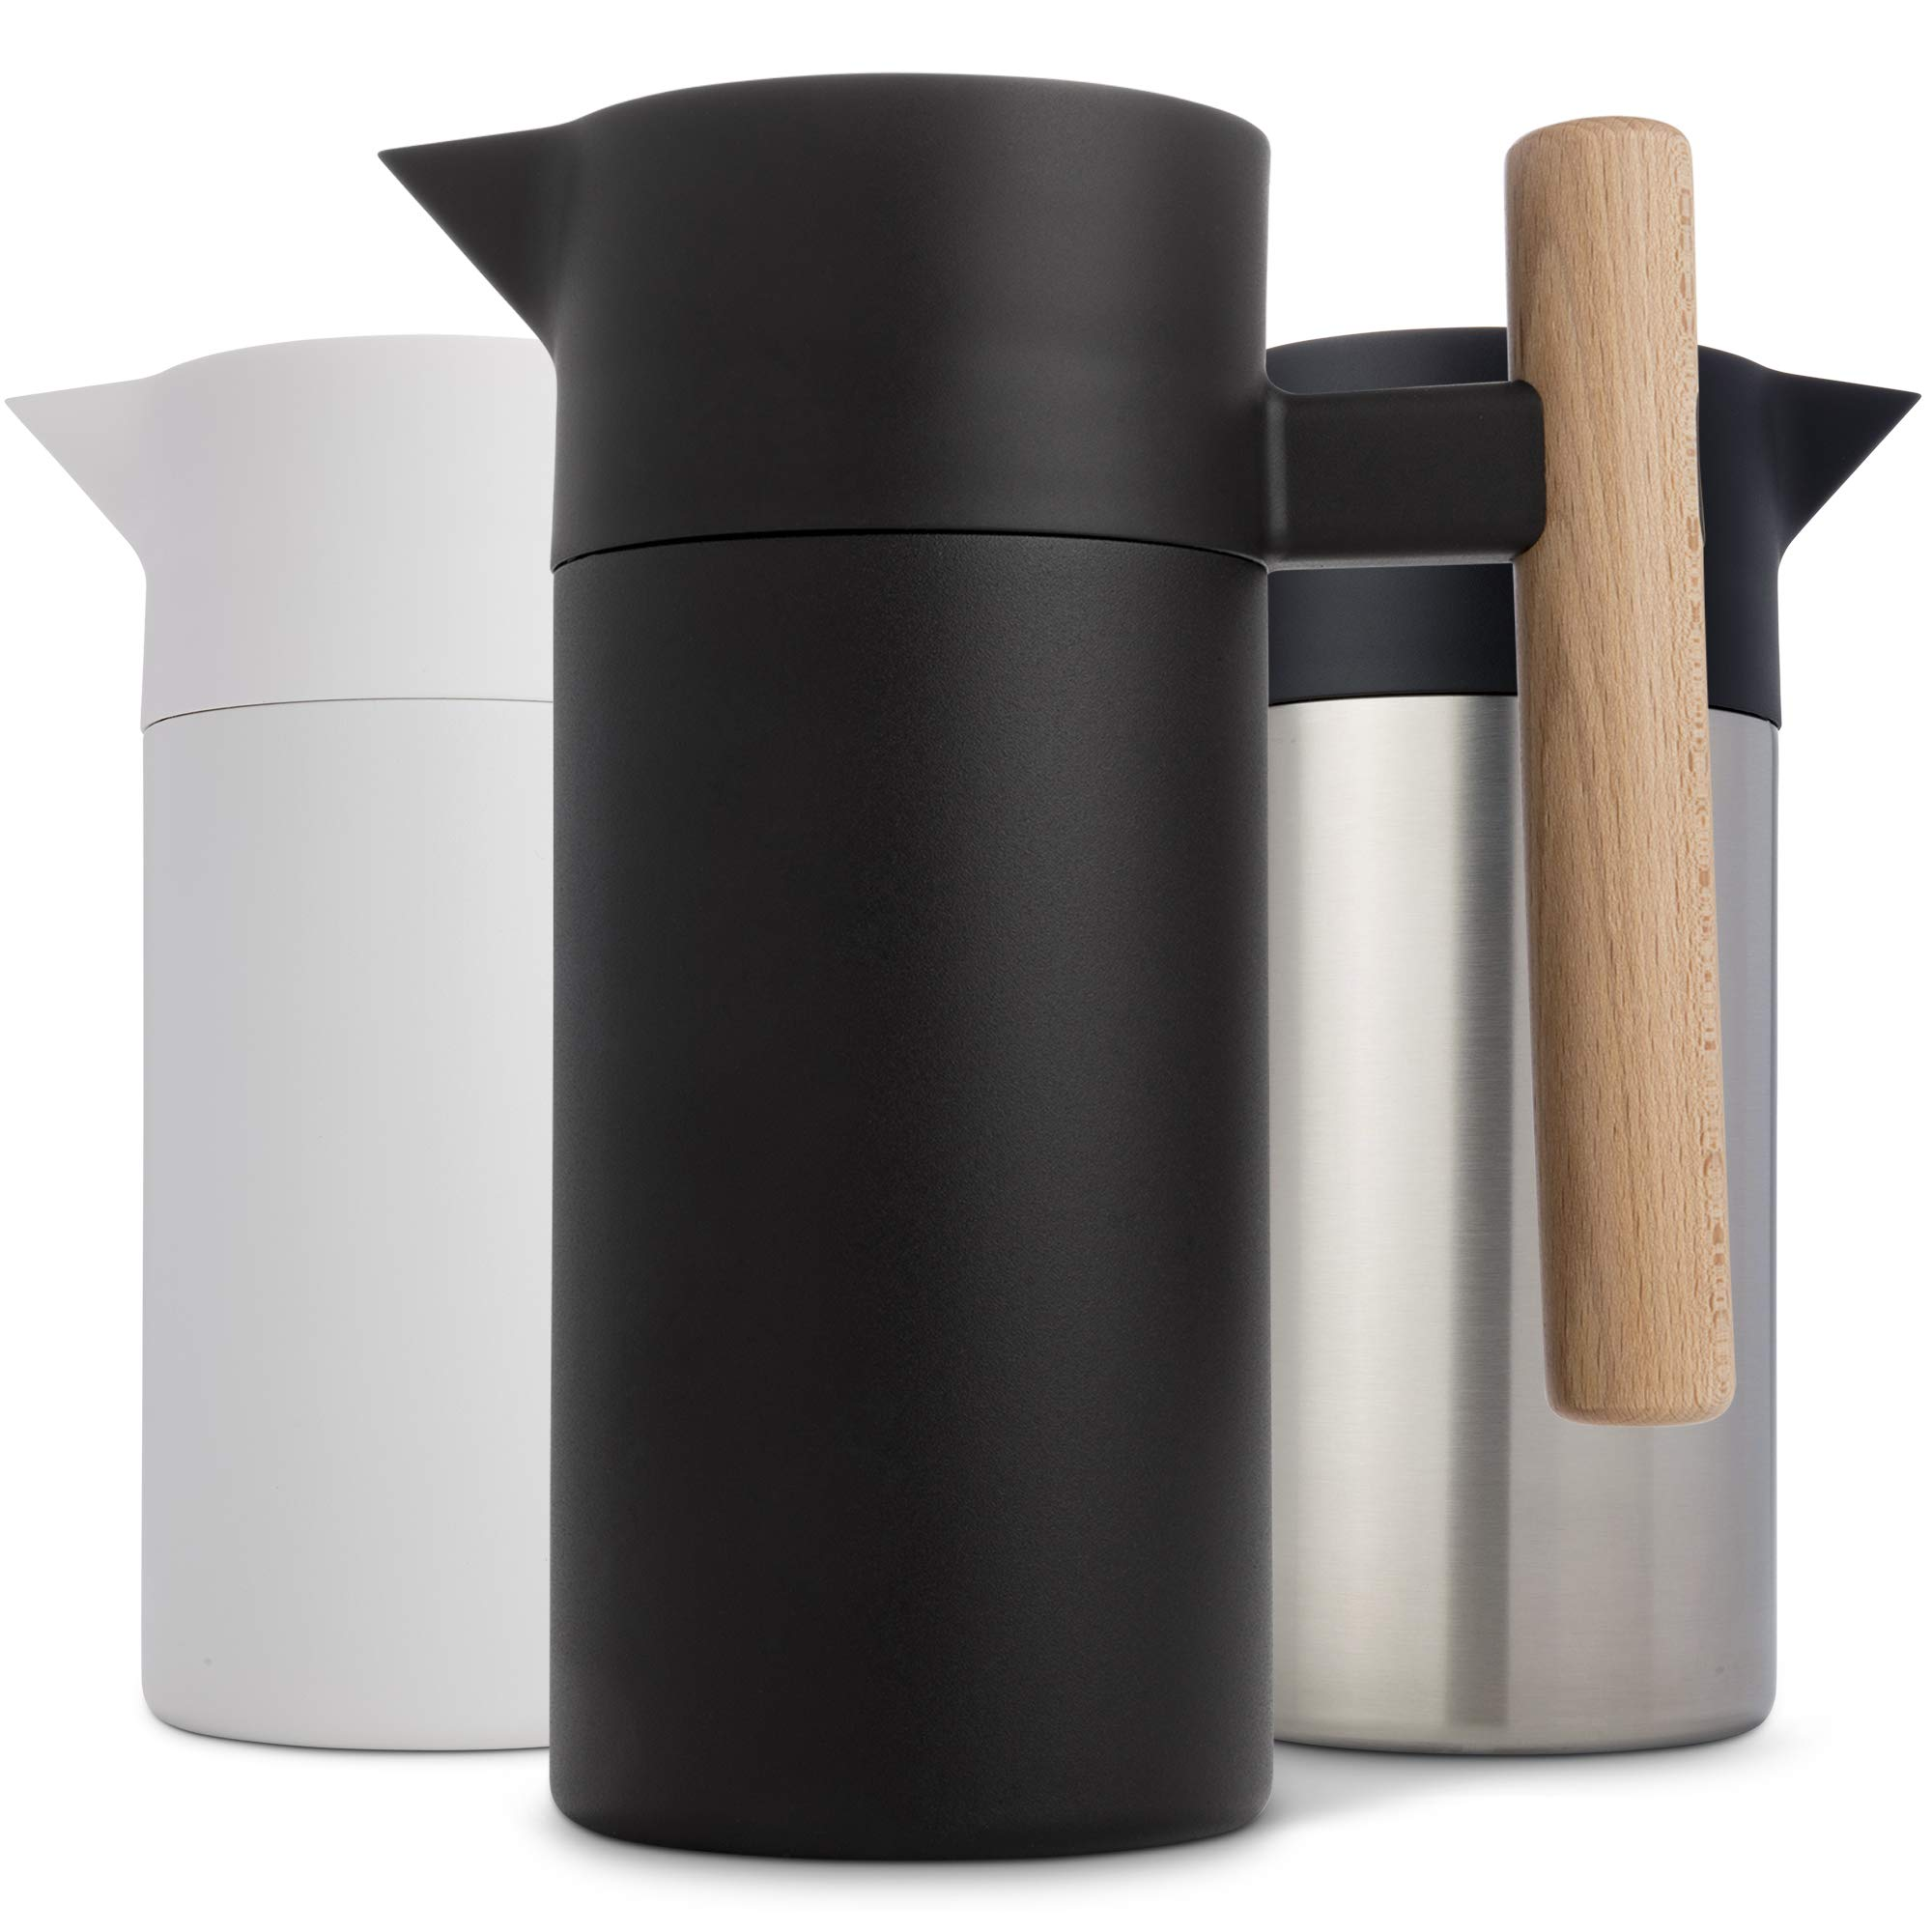 Stainless Steel Thermal Coffee Carafe - Double-Walled Vacuum Insulated Thermos and Beverage Pot - Compact, Travel-Size Strainer for Tea, Infused Drinks and Water - 40 Fl oz, Black